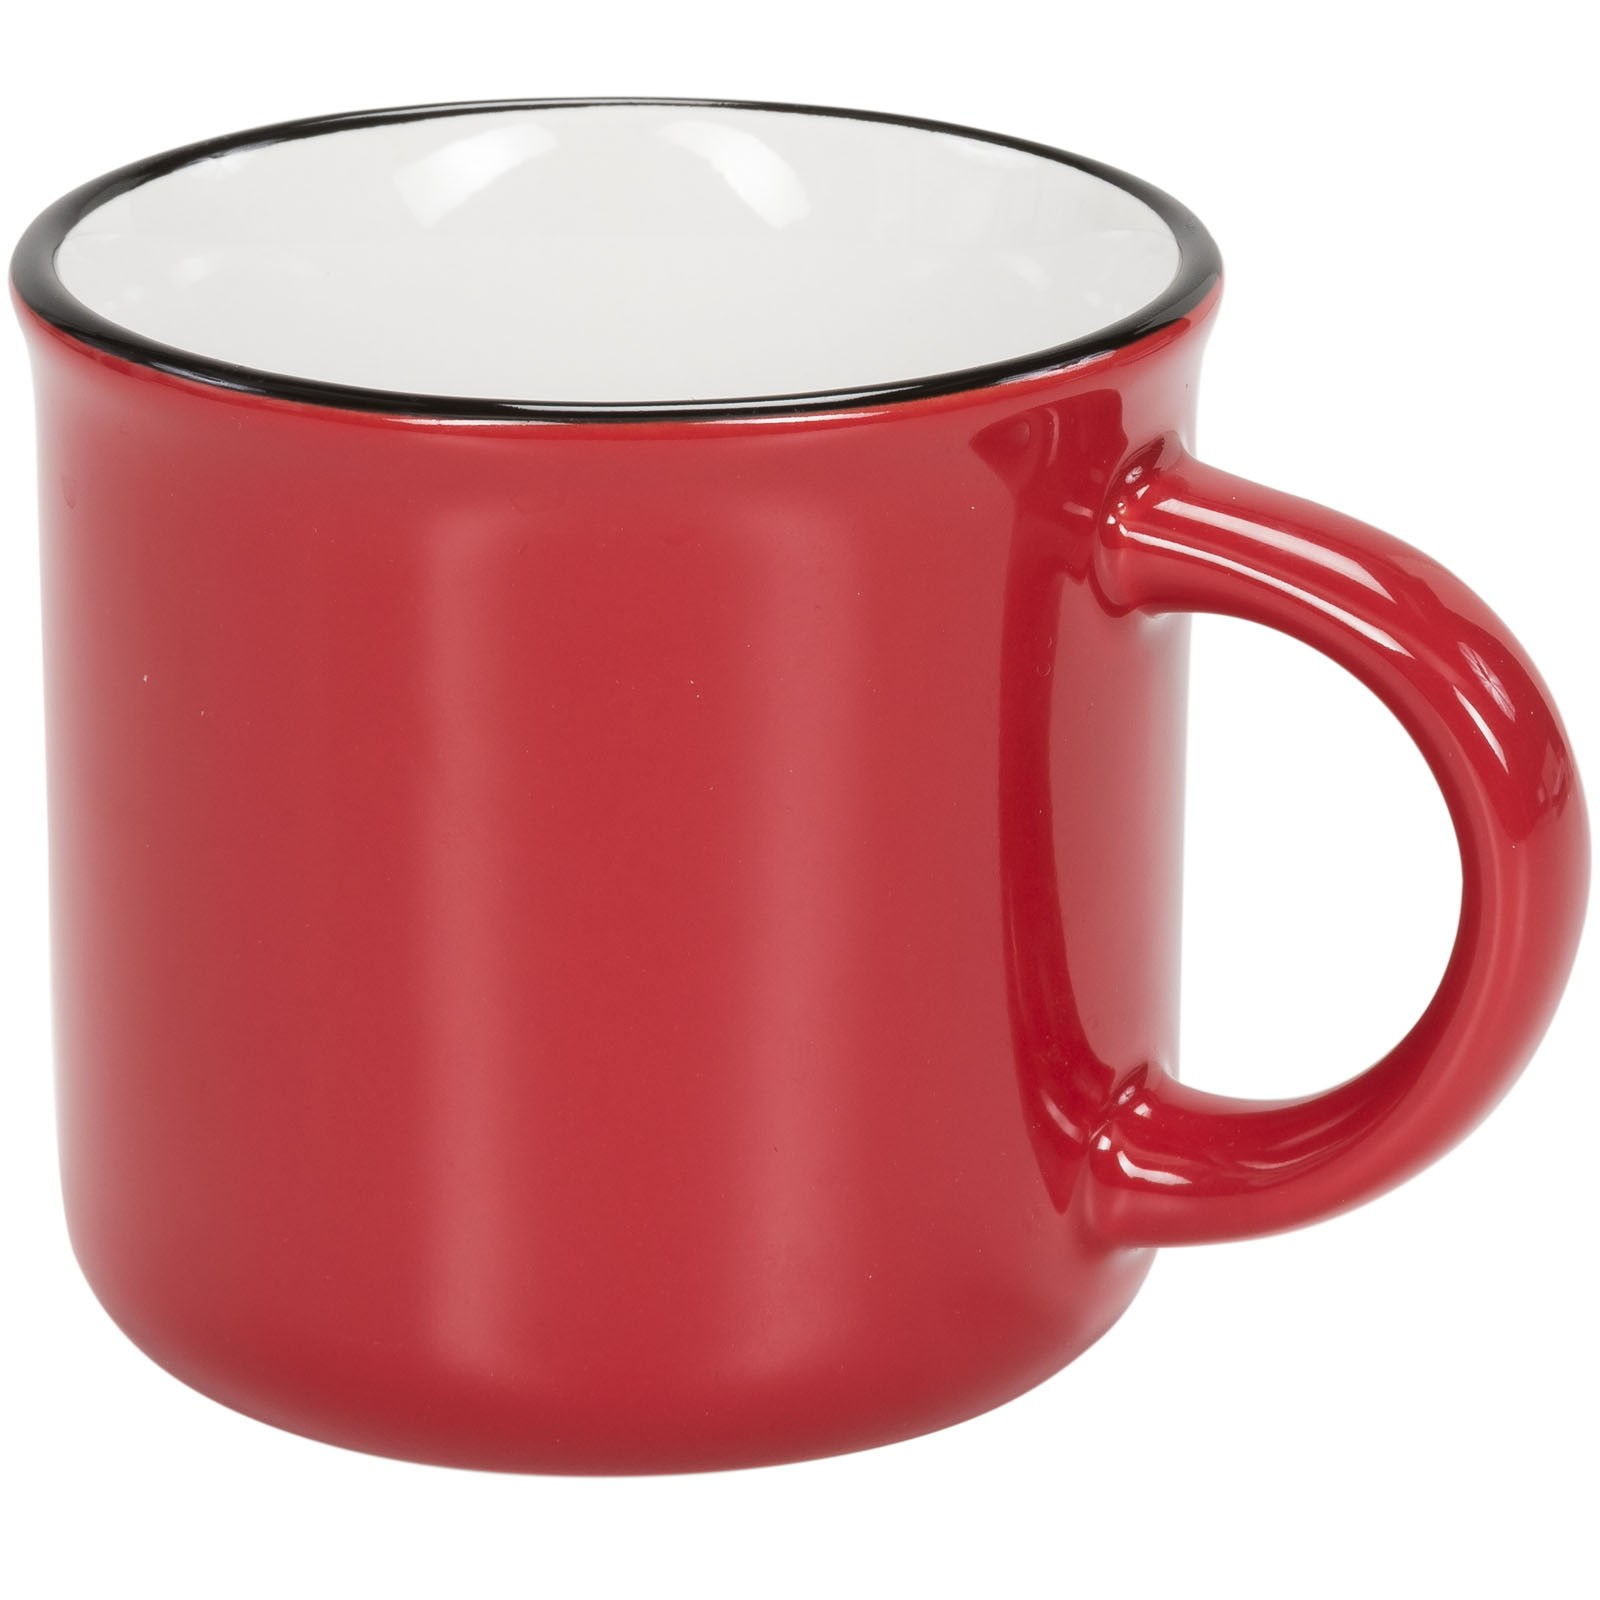 Lakeview 310 ml ceramic mug - Red